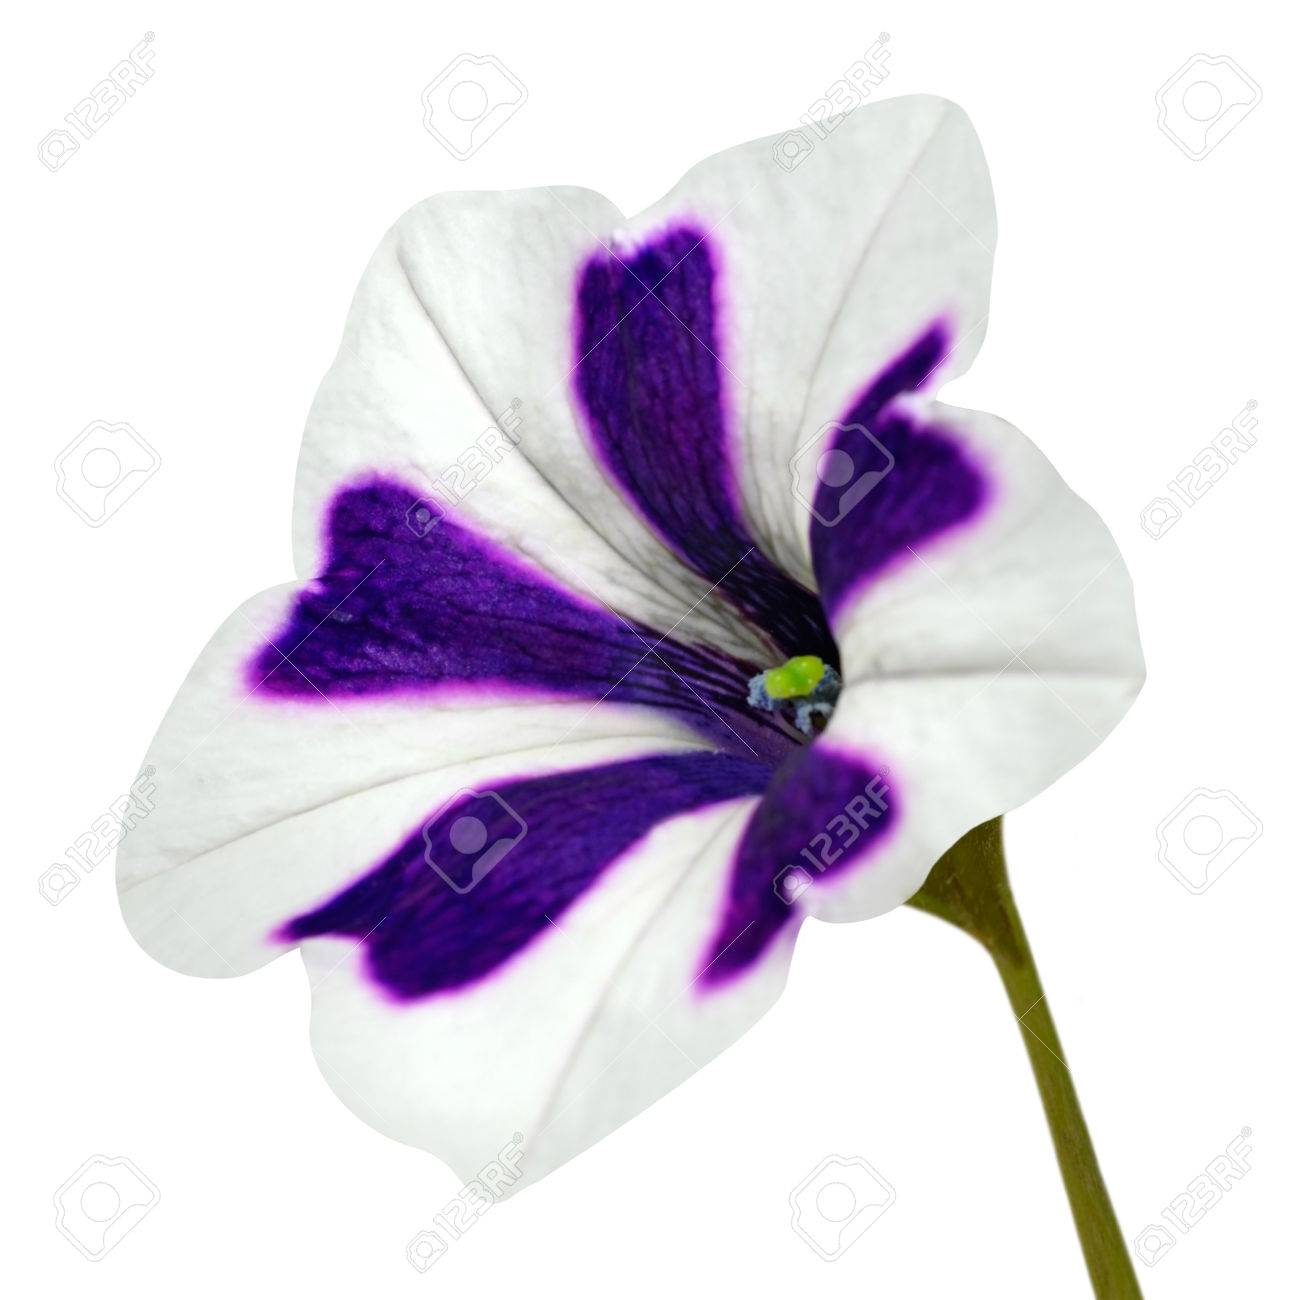 Star Shaped Morning Glory Flower With White And Purple Stripes